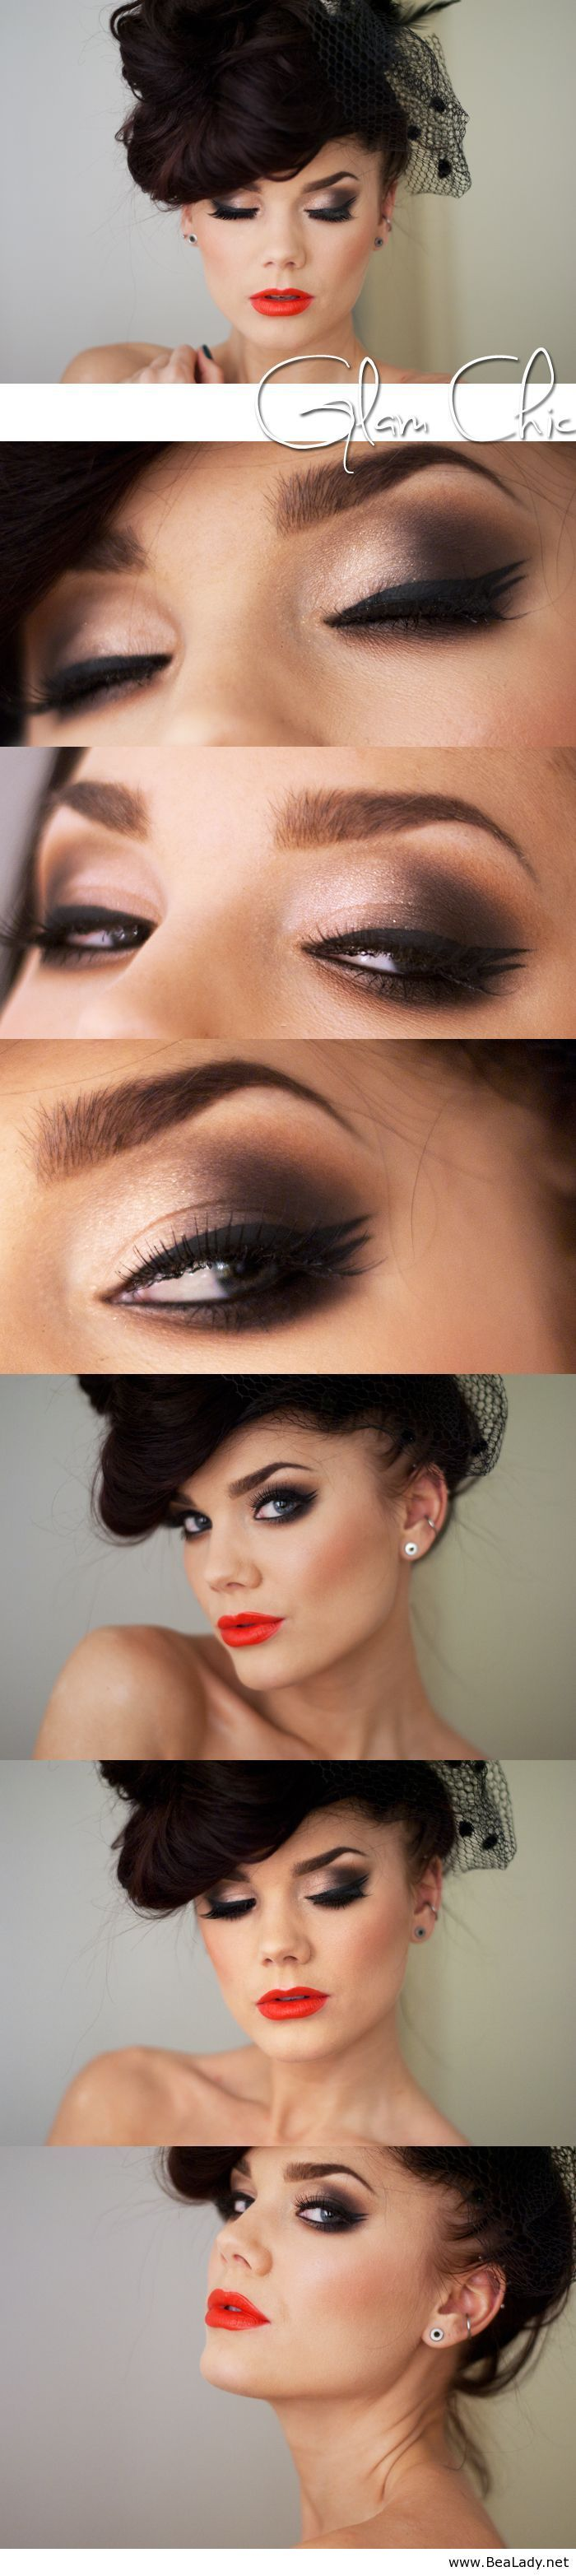 Makeup for a lady – Vintage - BeaLady.net